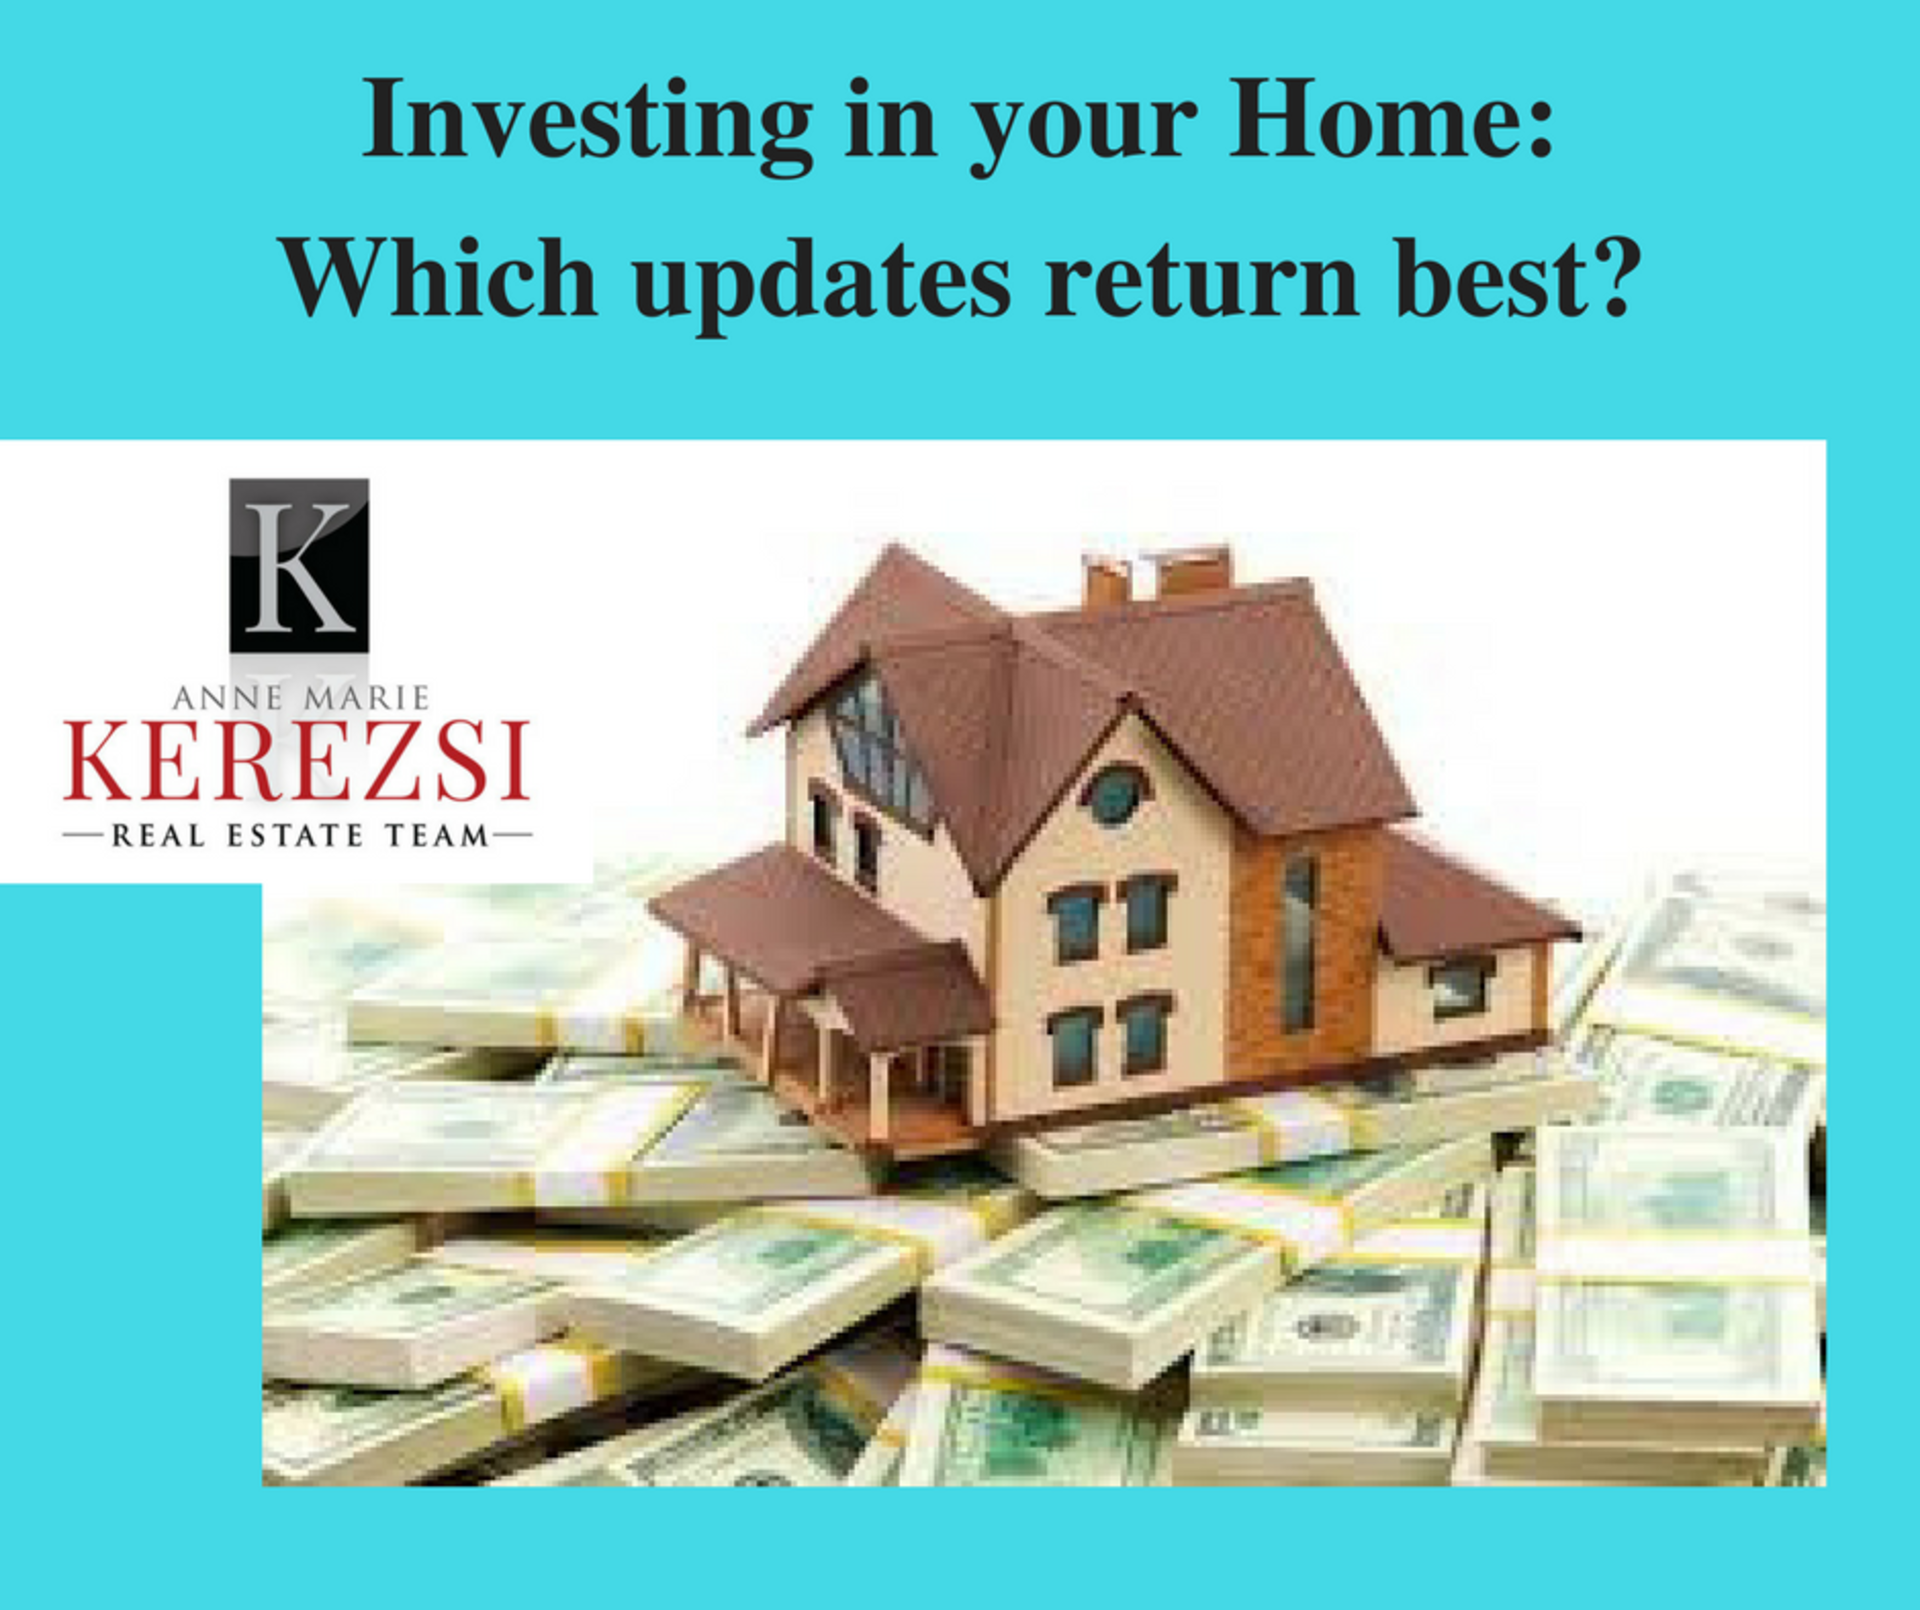 Investing In Your Home: Which Updates Return Best? (from HomeKeepr)